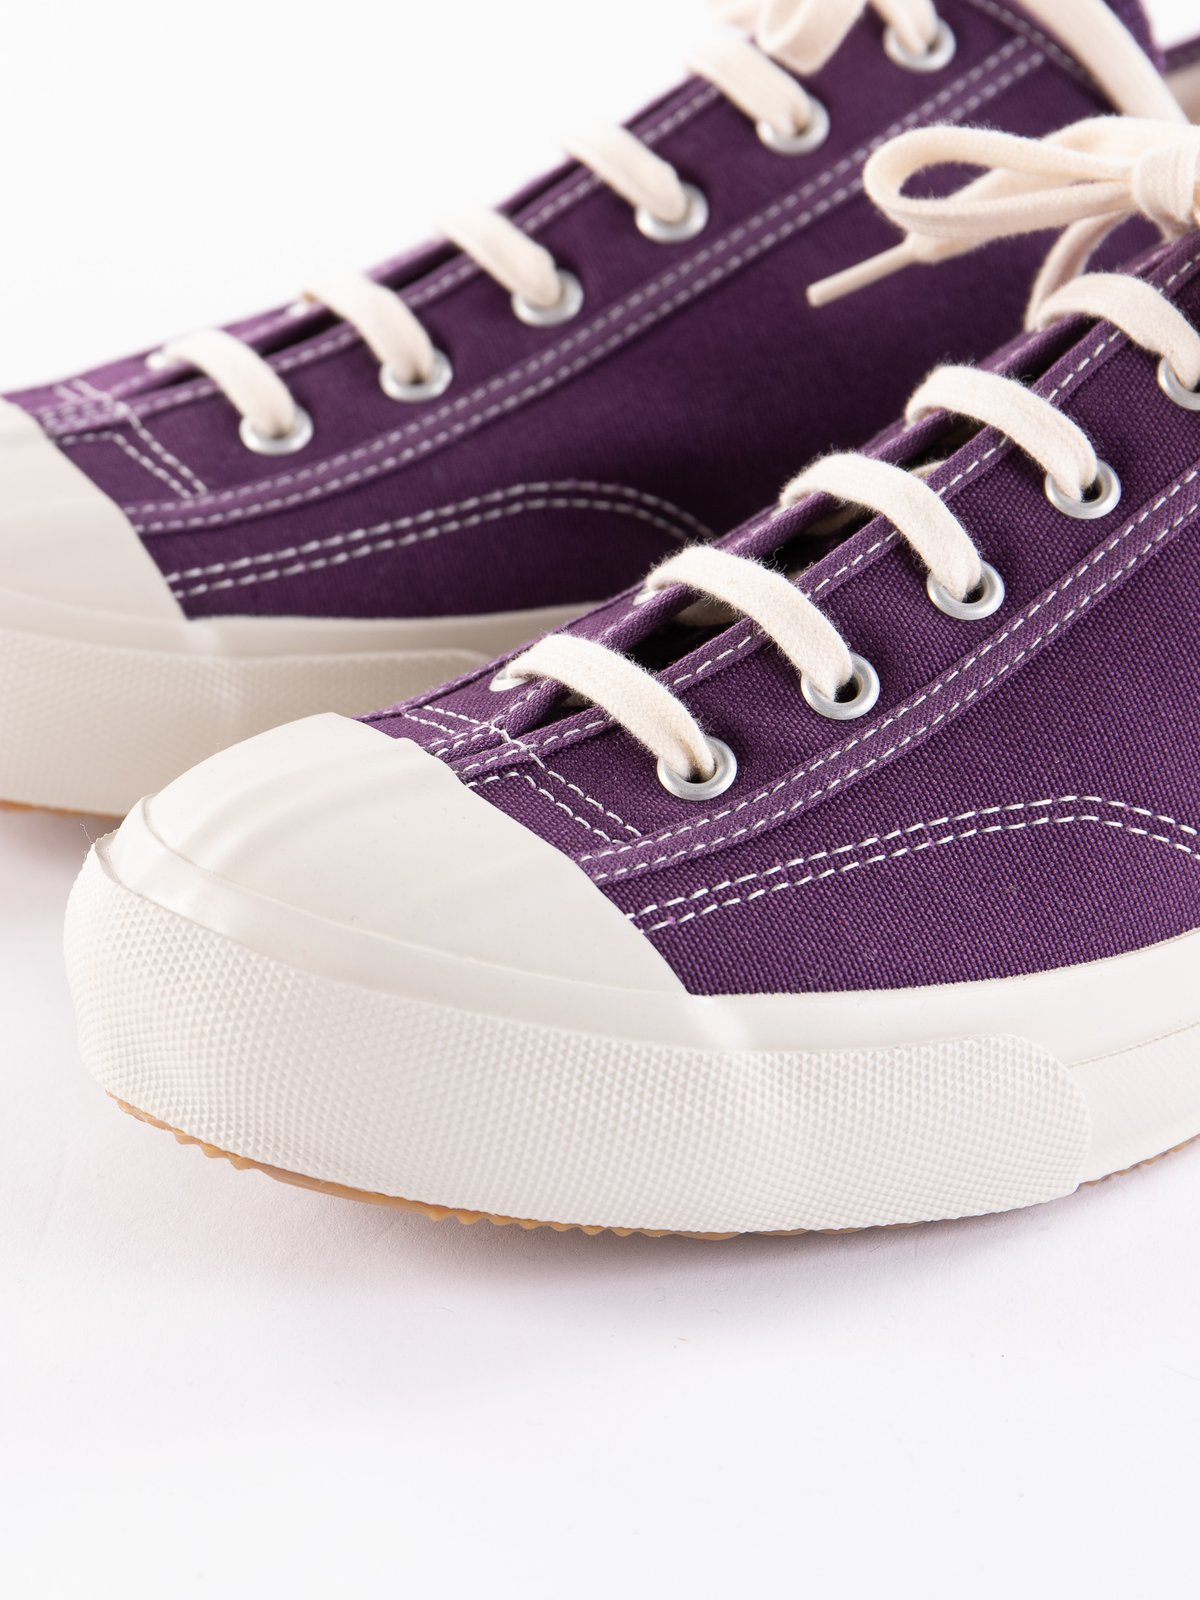 Purple Gym Classic Trainer - Image 3